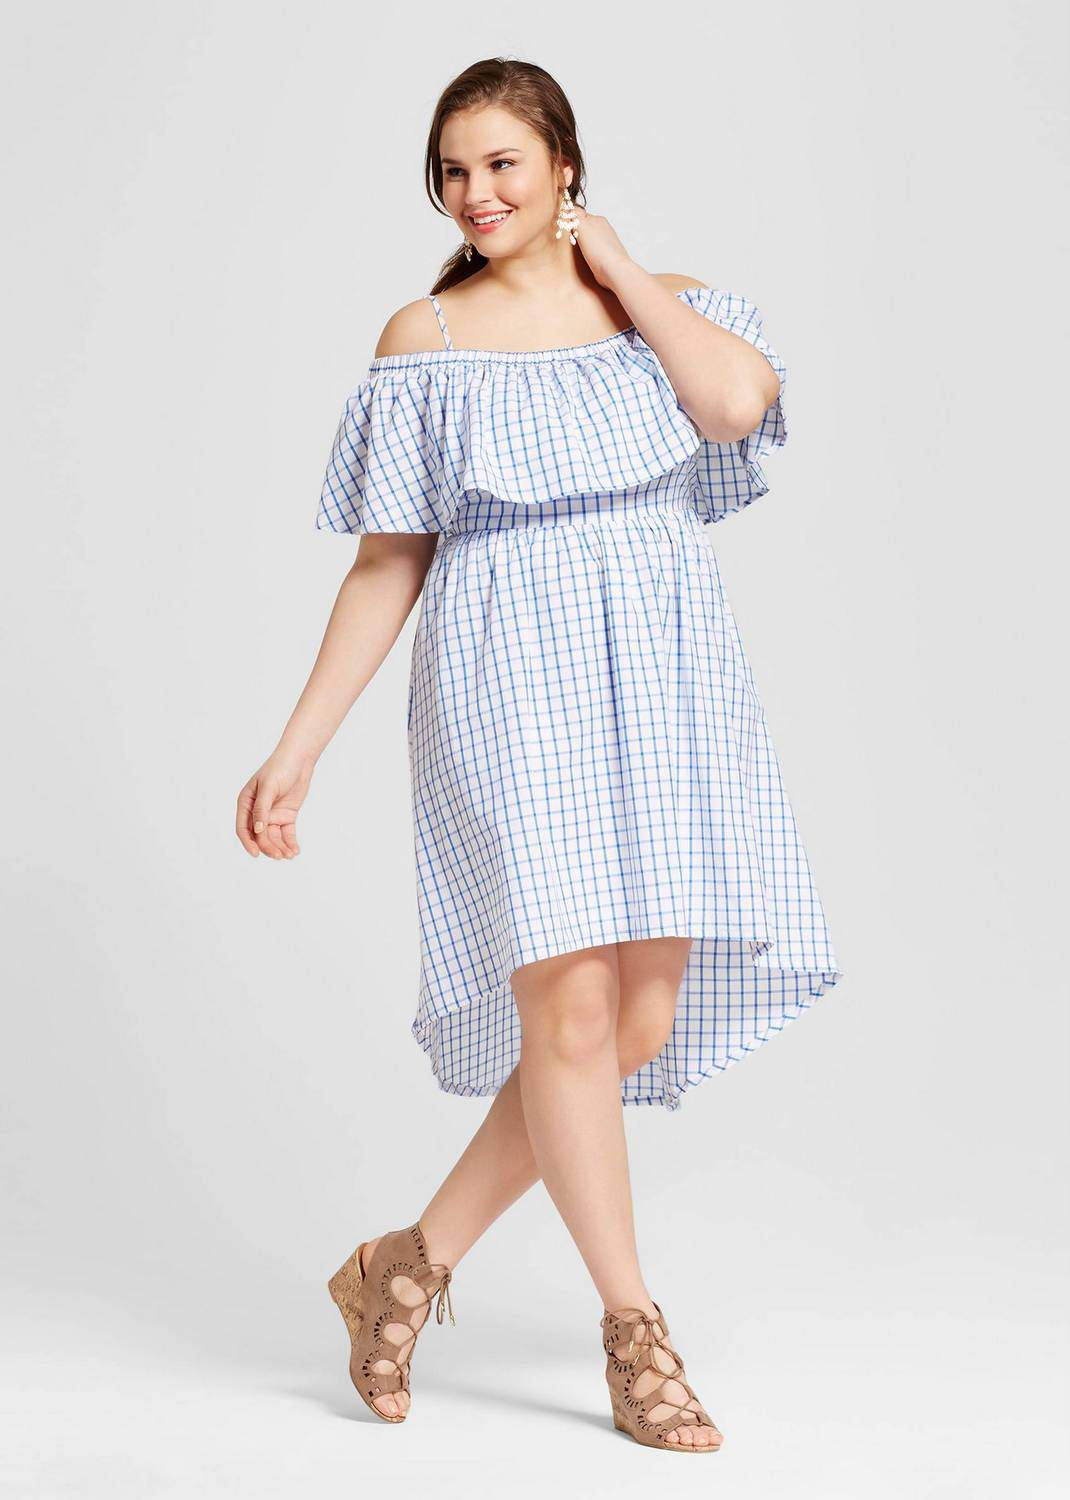 For the Love of Gingham! 13 Plus Size Picks You'll Want to Rock